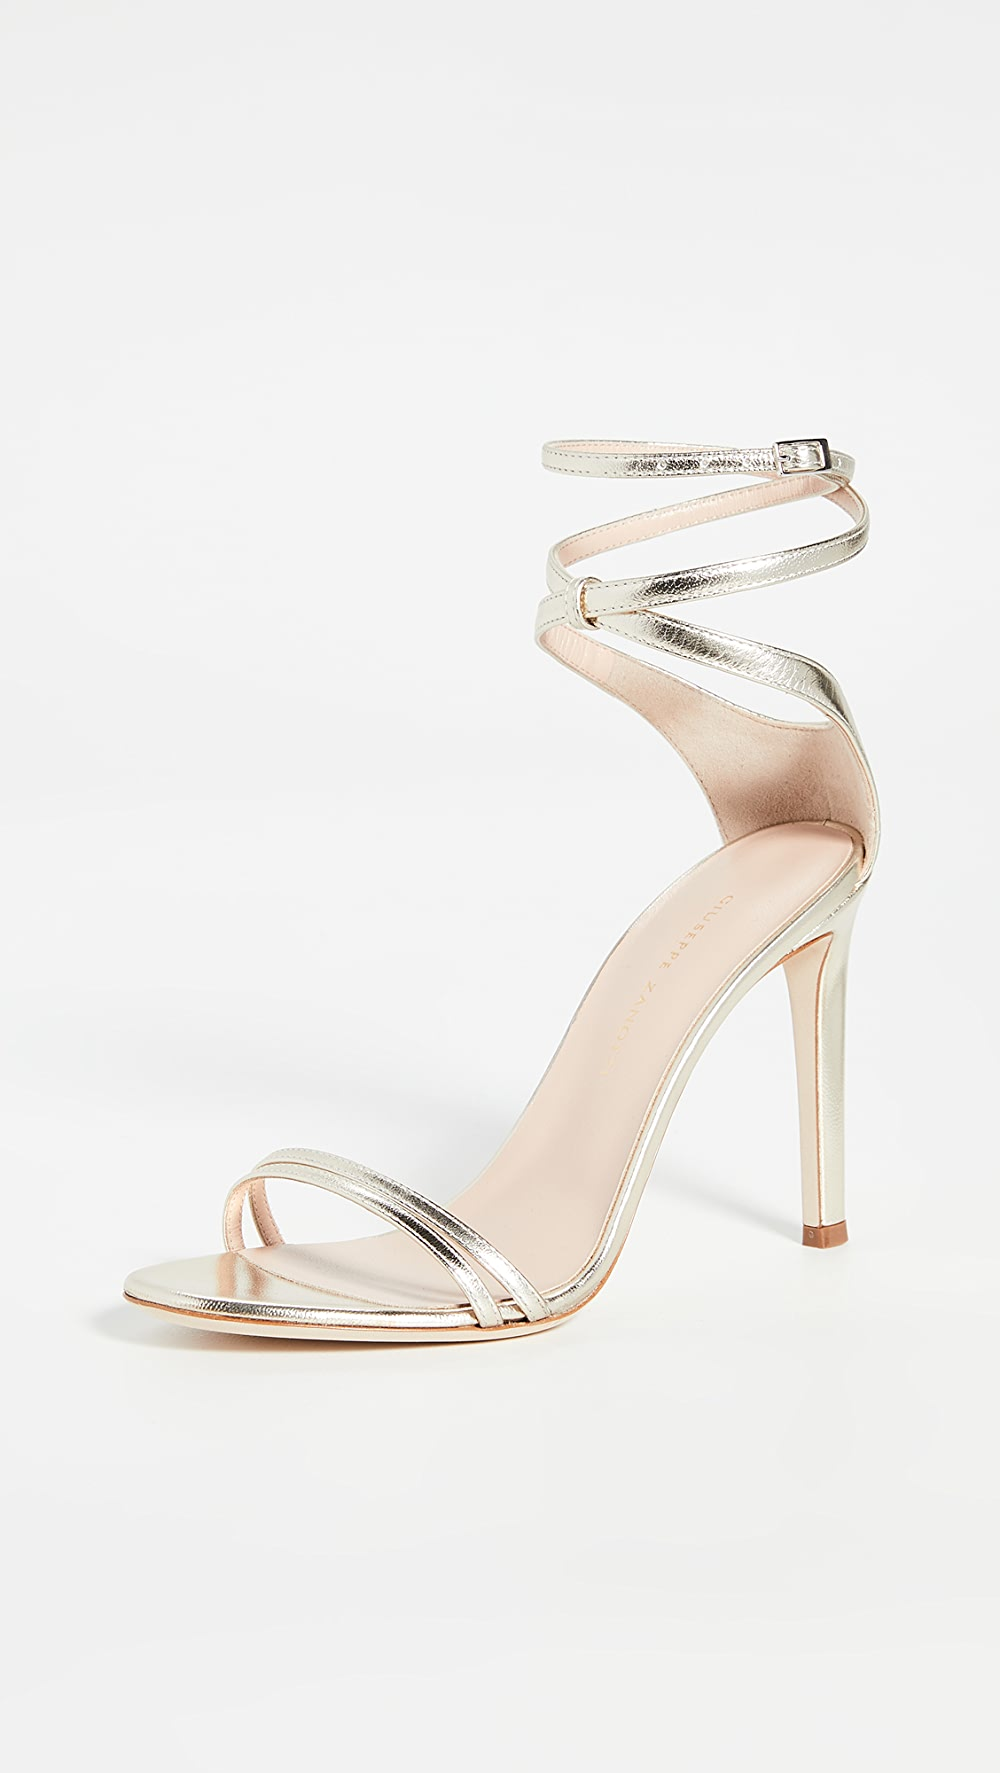 Cheap Price Giuseppe Zanotti - Basic Sandals 105mm Elegant In Smell